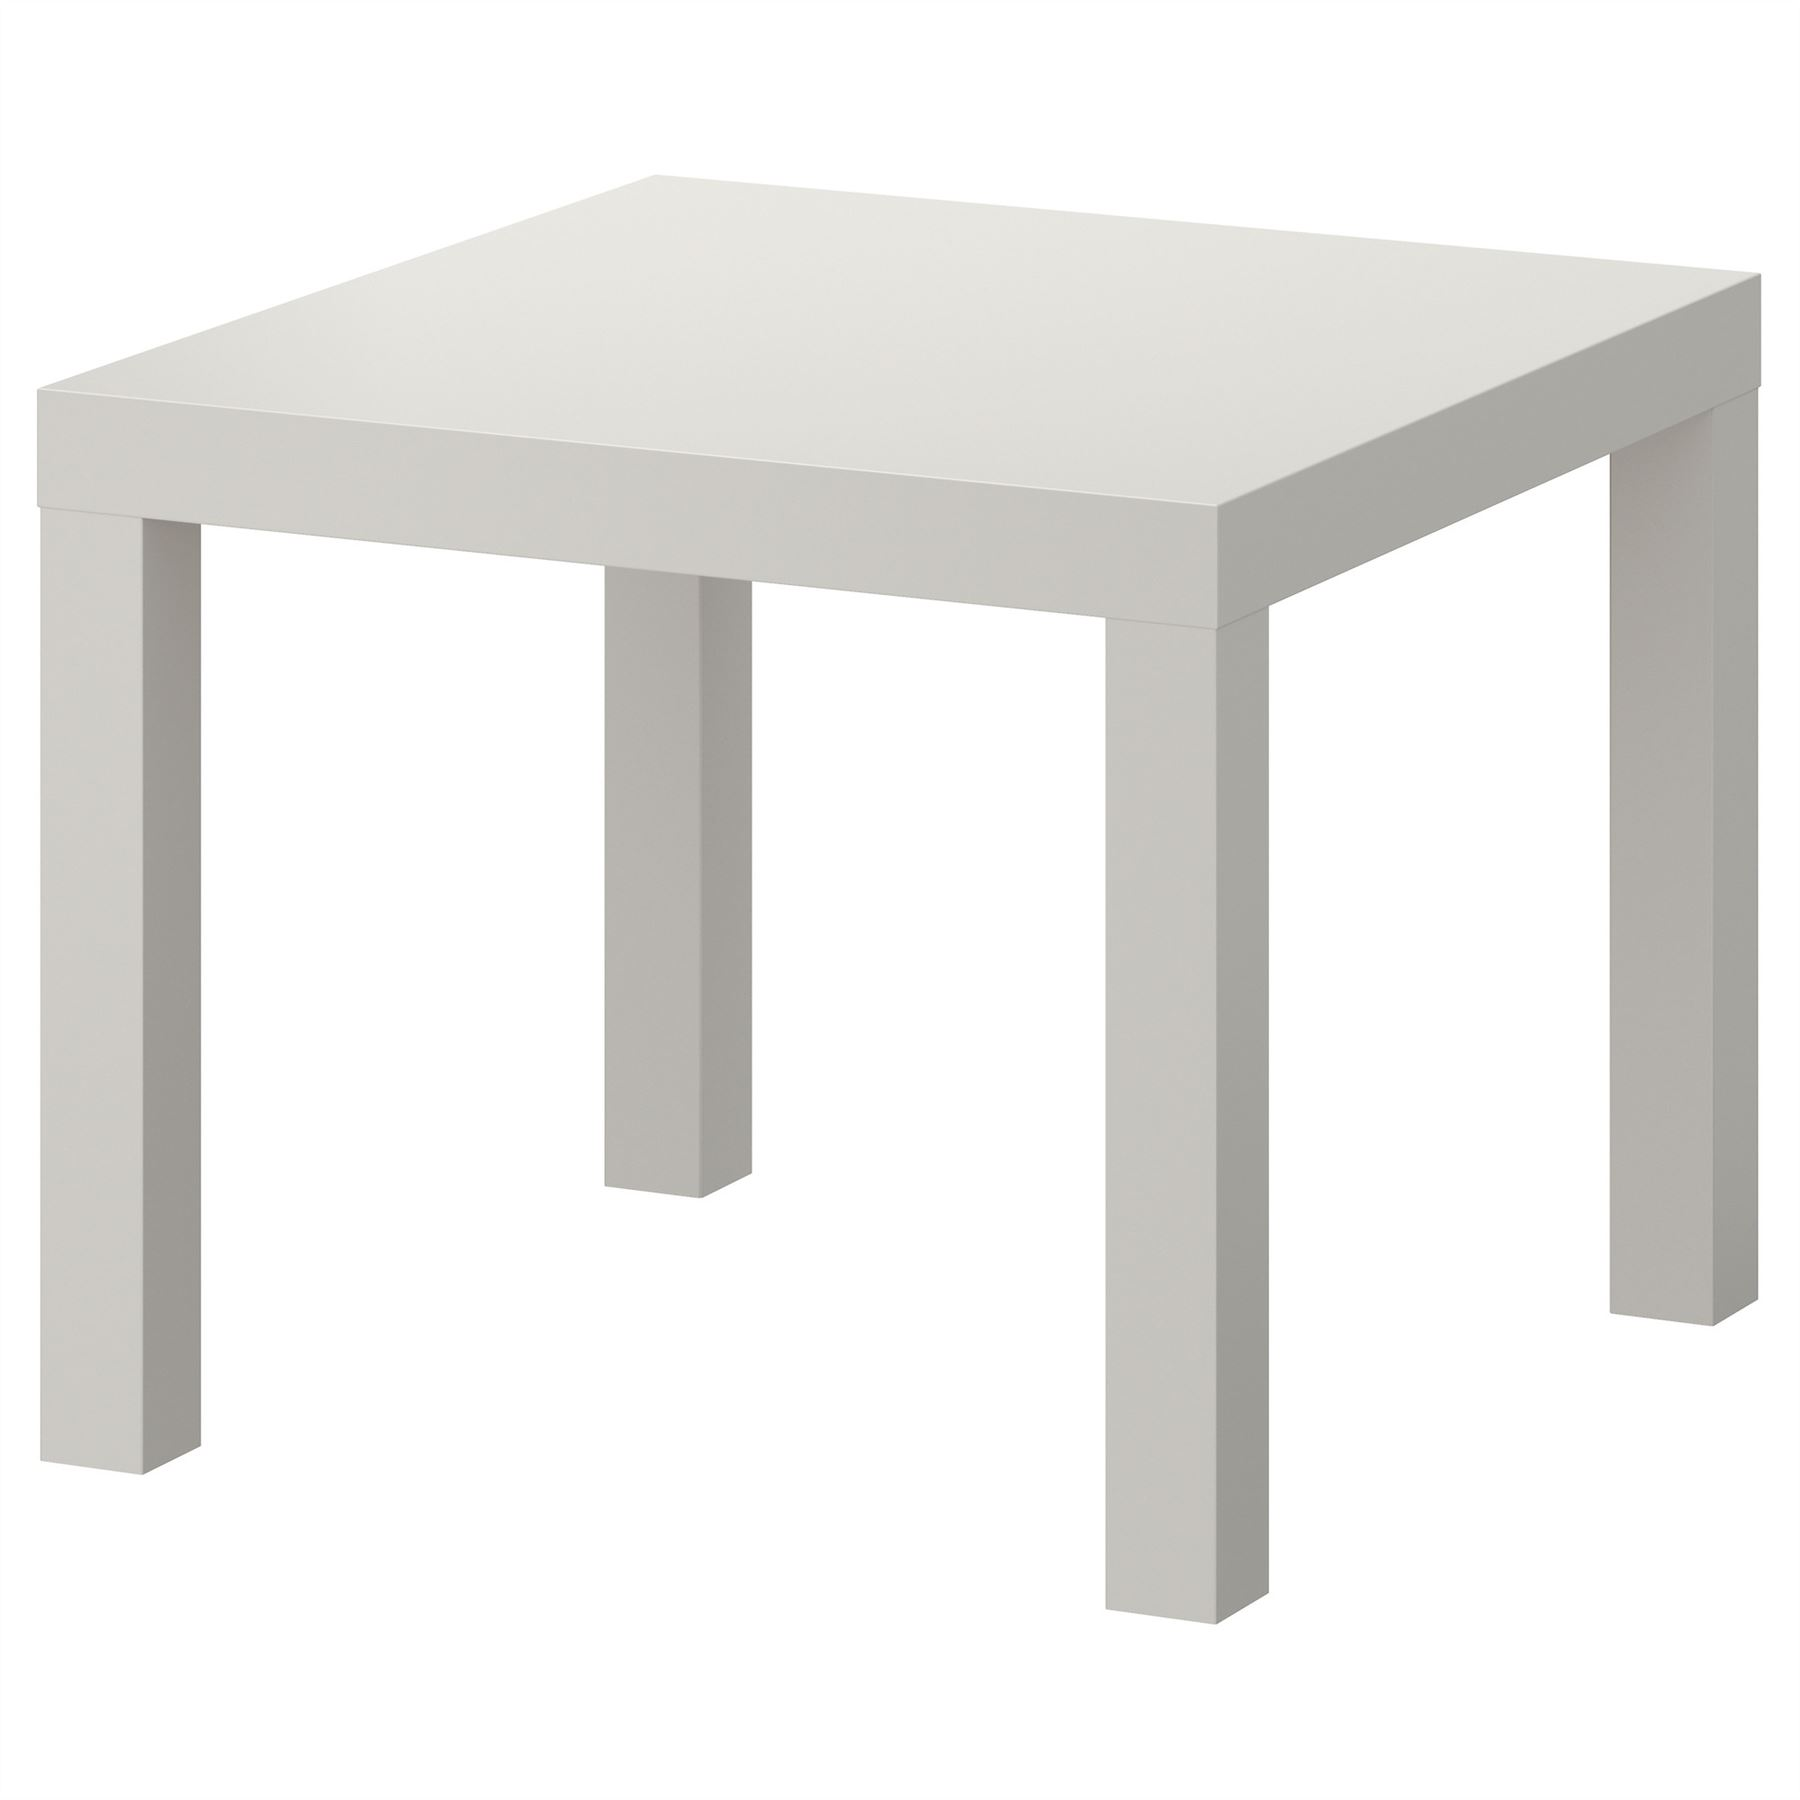 Ikea lack side table end display 55cm square small coffee table office bedroom ebay - Table bureau ikea ...